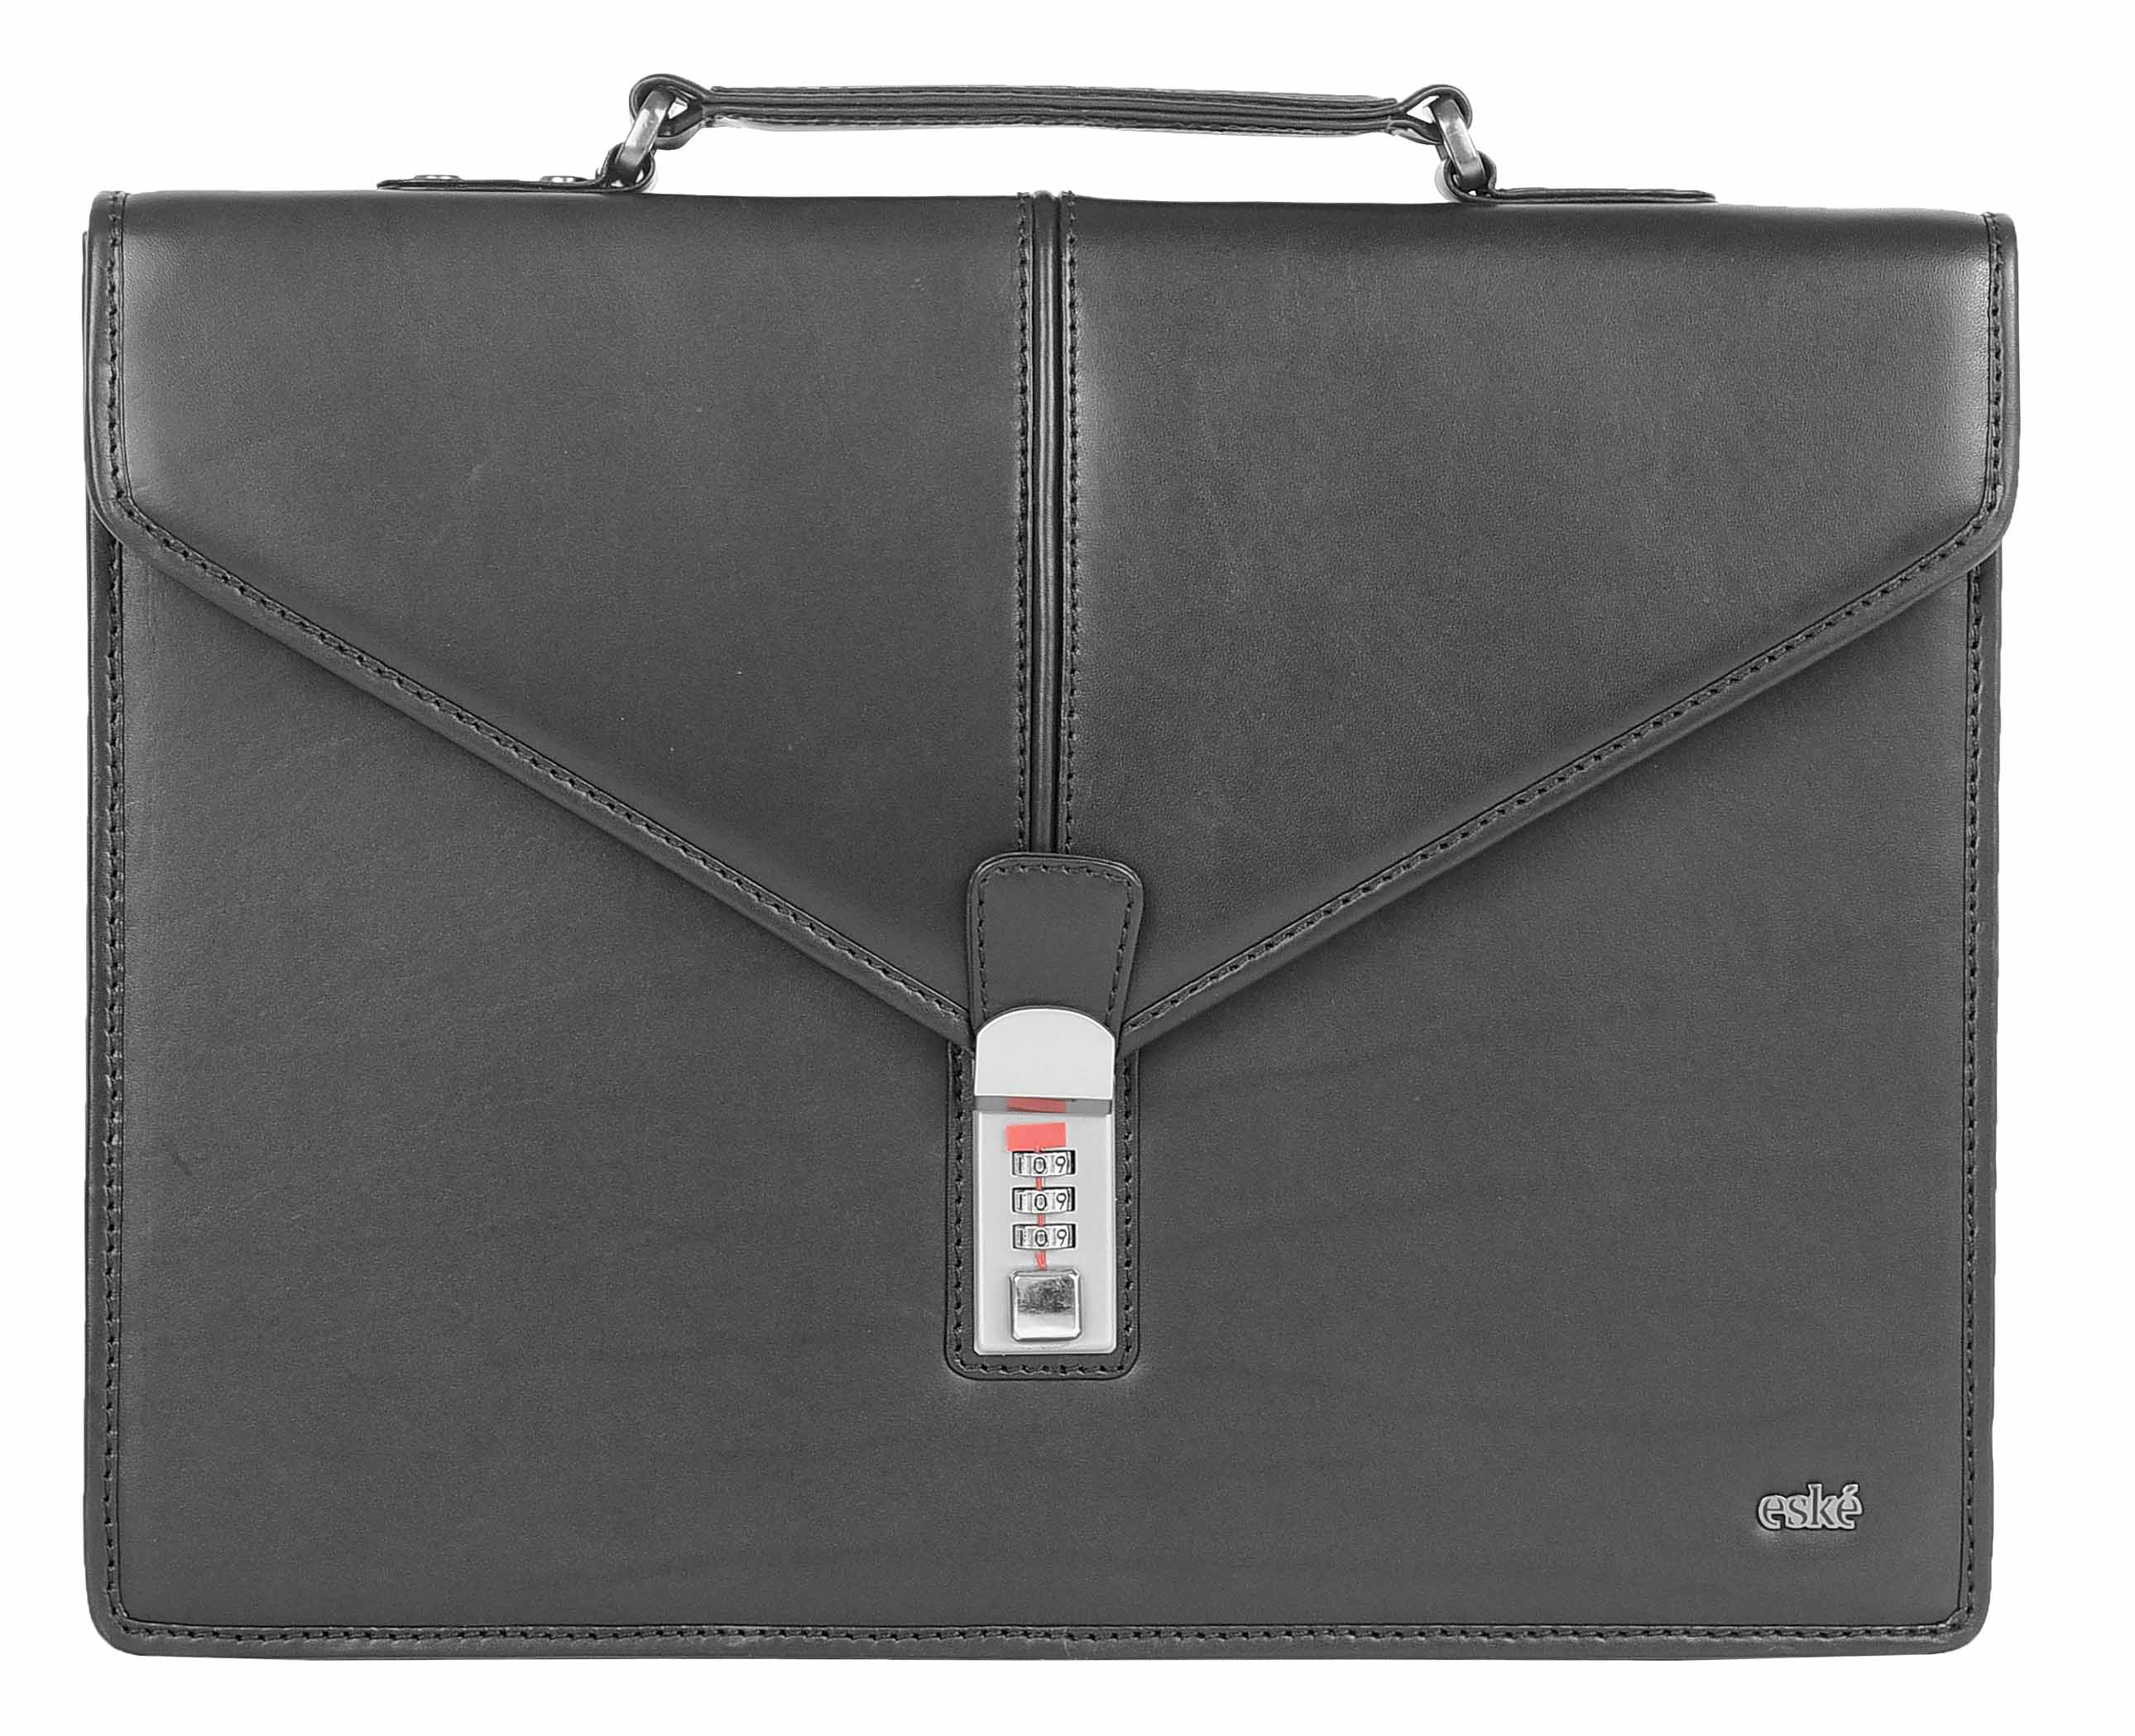 Eske Christopher Laptop Bag - Black